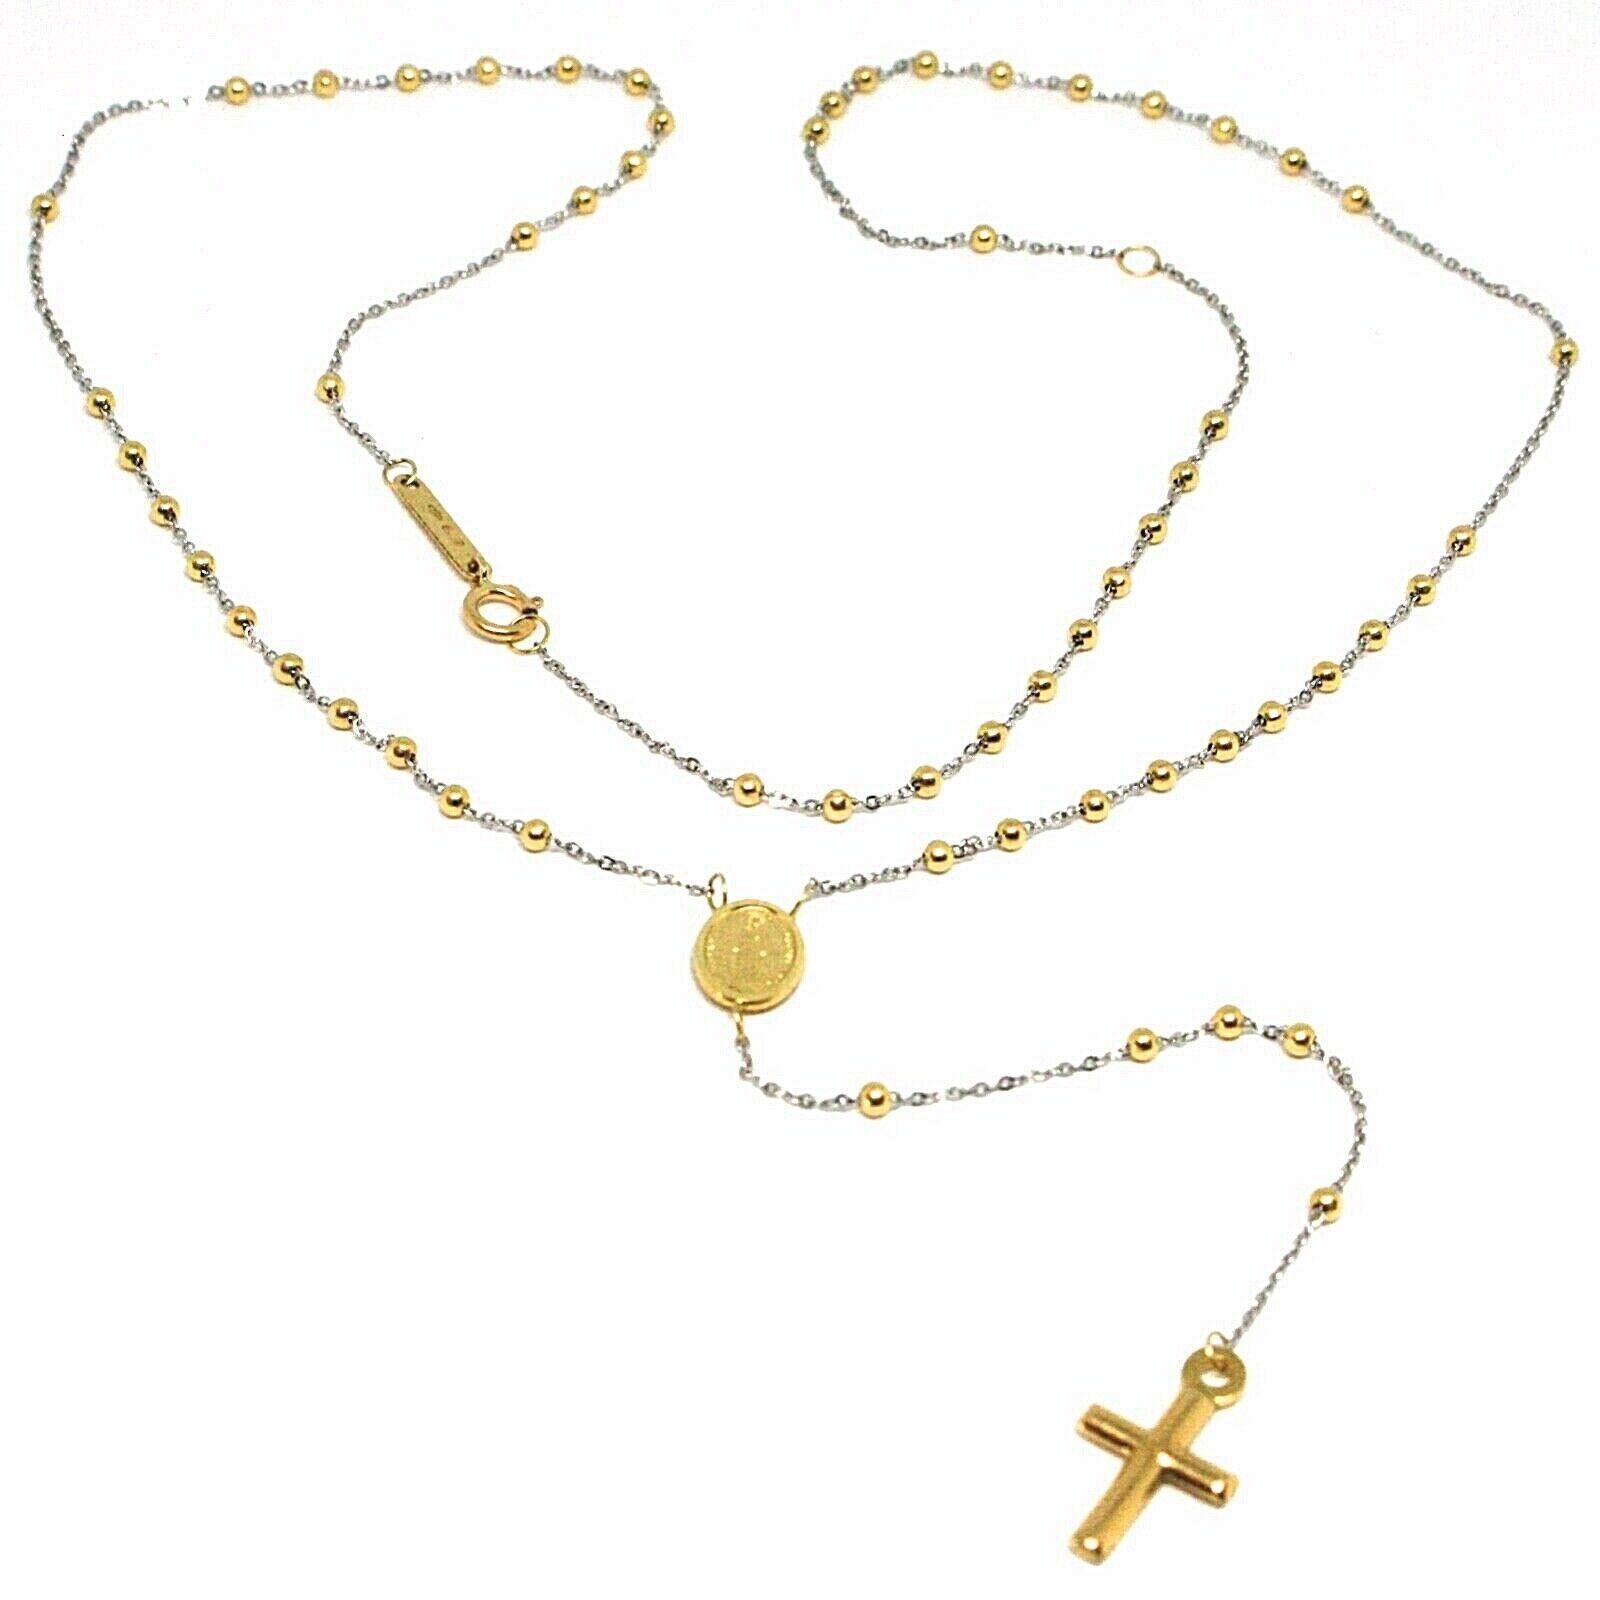 18K YELLOW WHITE GOLD MINI ROSARY NECKLACE MIRACULOUS MARY MEDAL JESUS CROSS